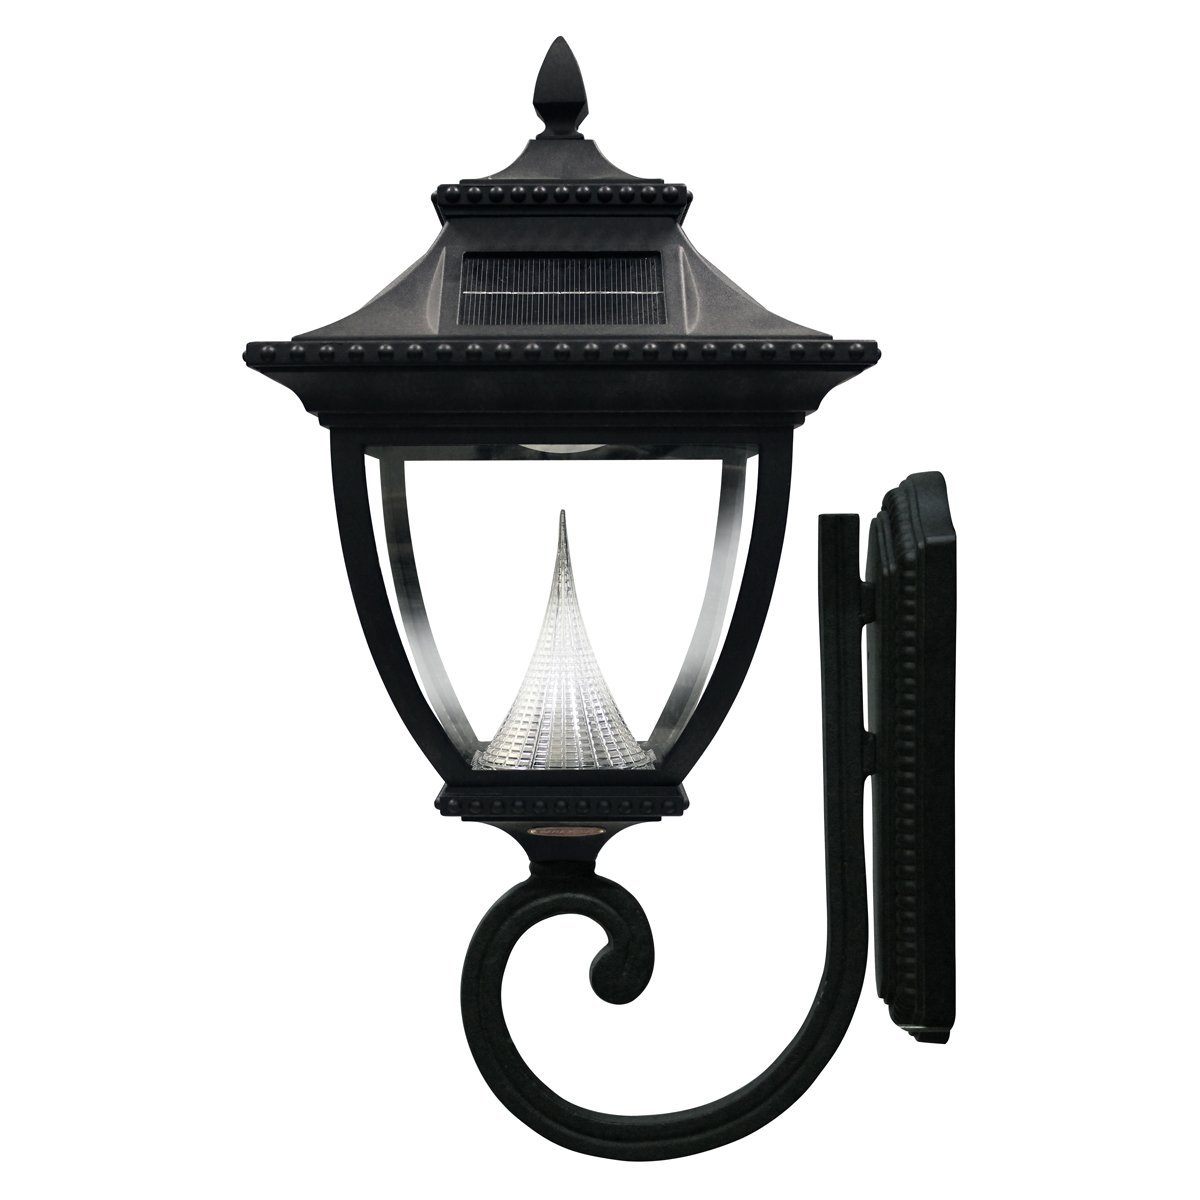 Gama Sonic Pagoda Solar Outdoor Wall Light GS-104W - Black Finish